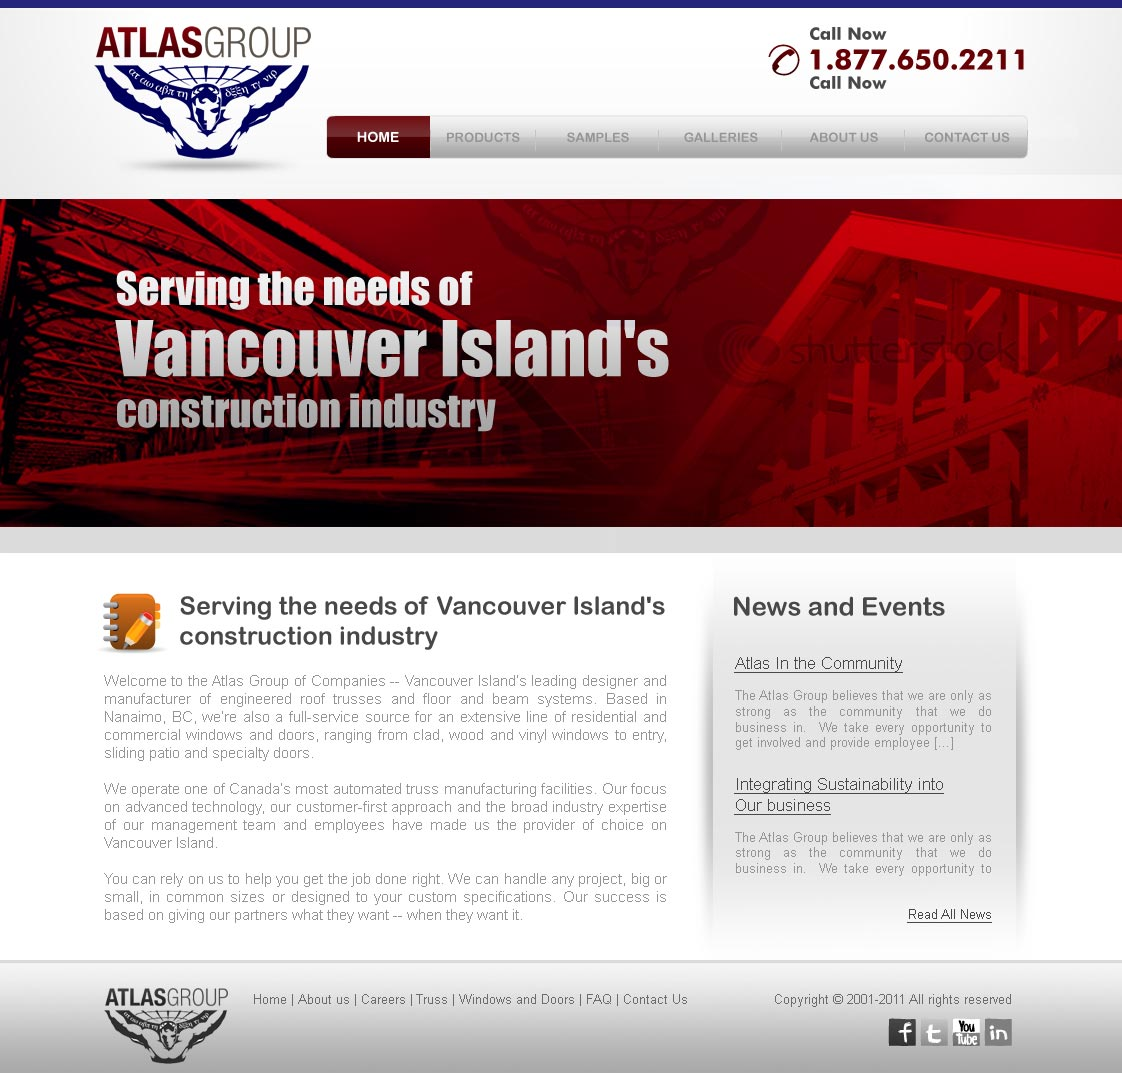 Web Page Design by ArsalanHanif - Entry No. 2 in the Web Page Design Contest The Atlas Group Website.